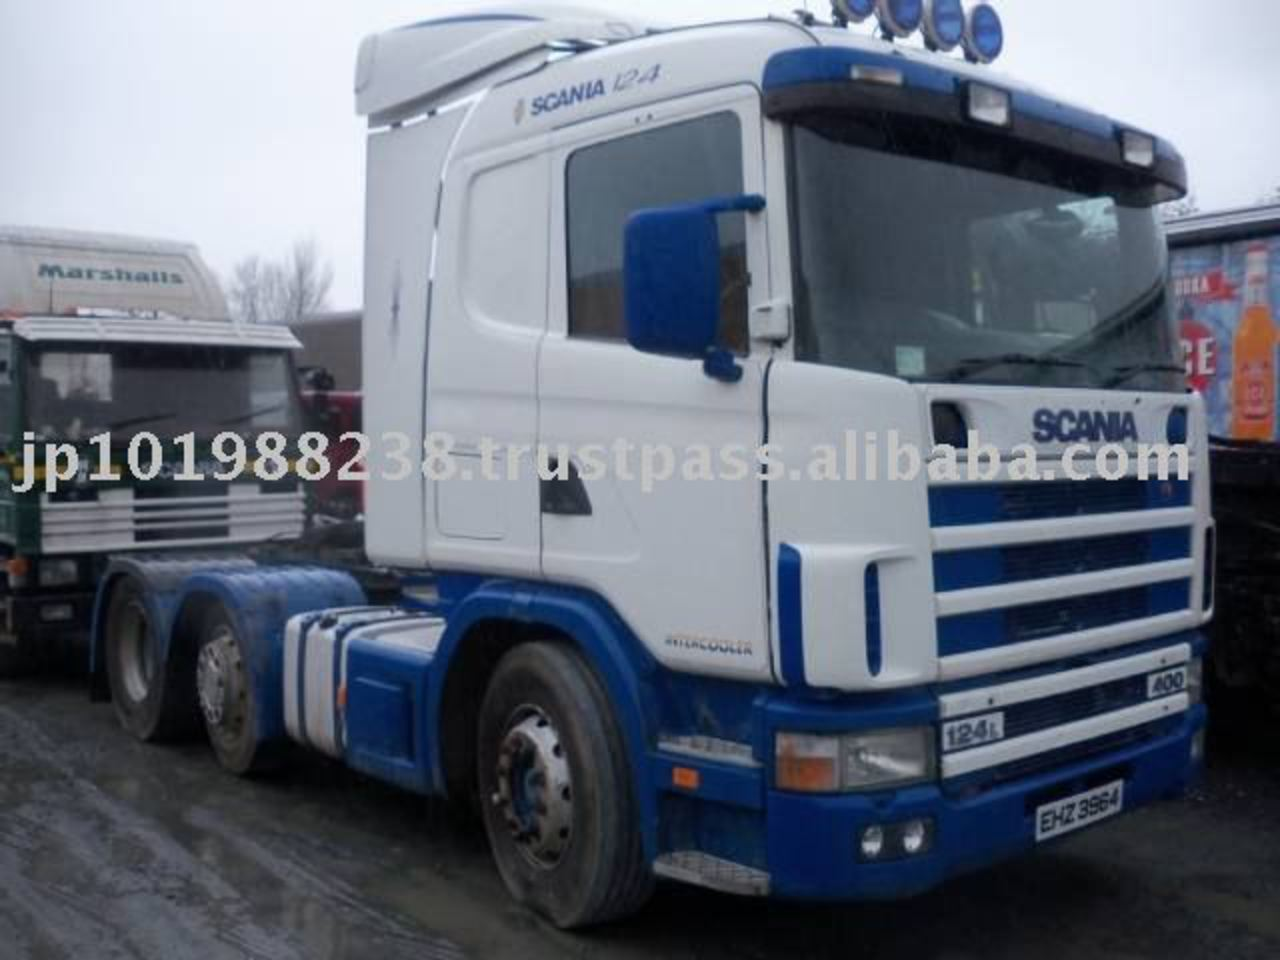 Scania cl94 photo - 4